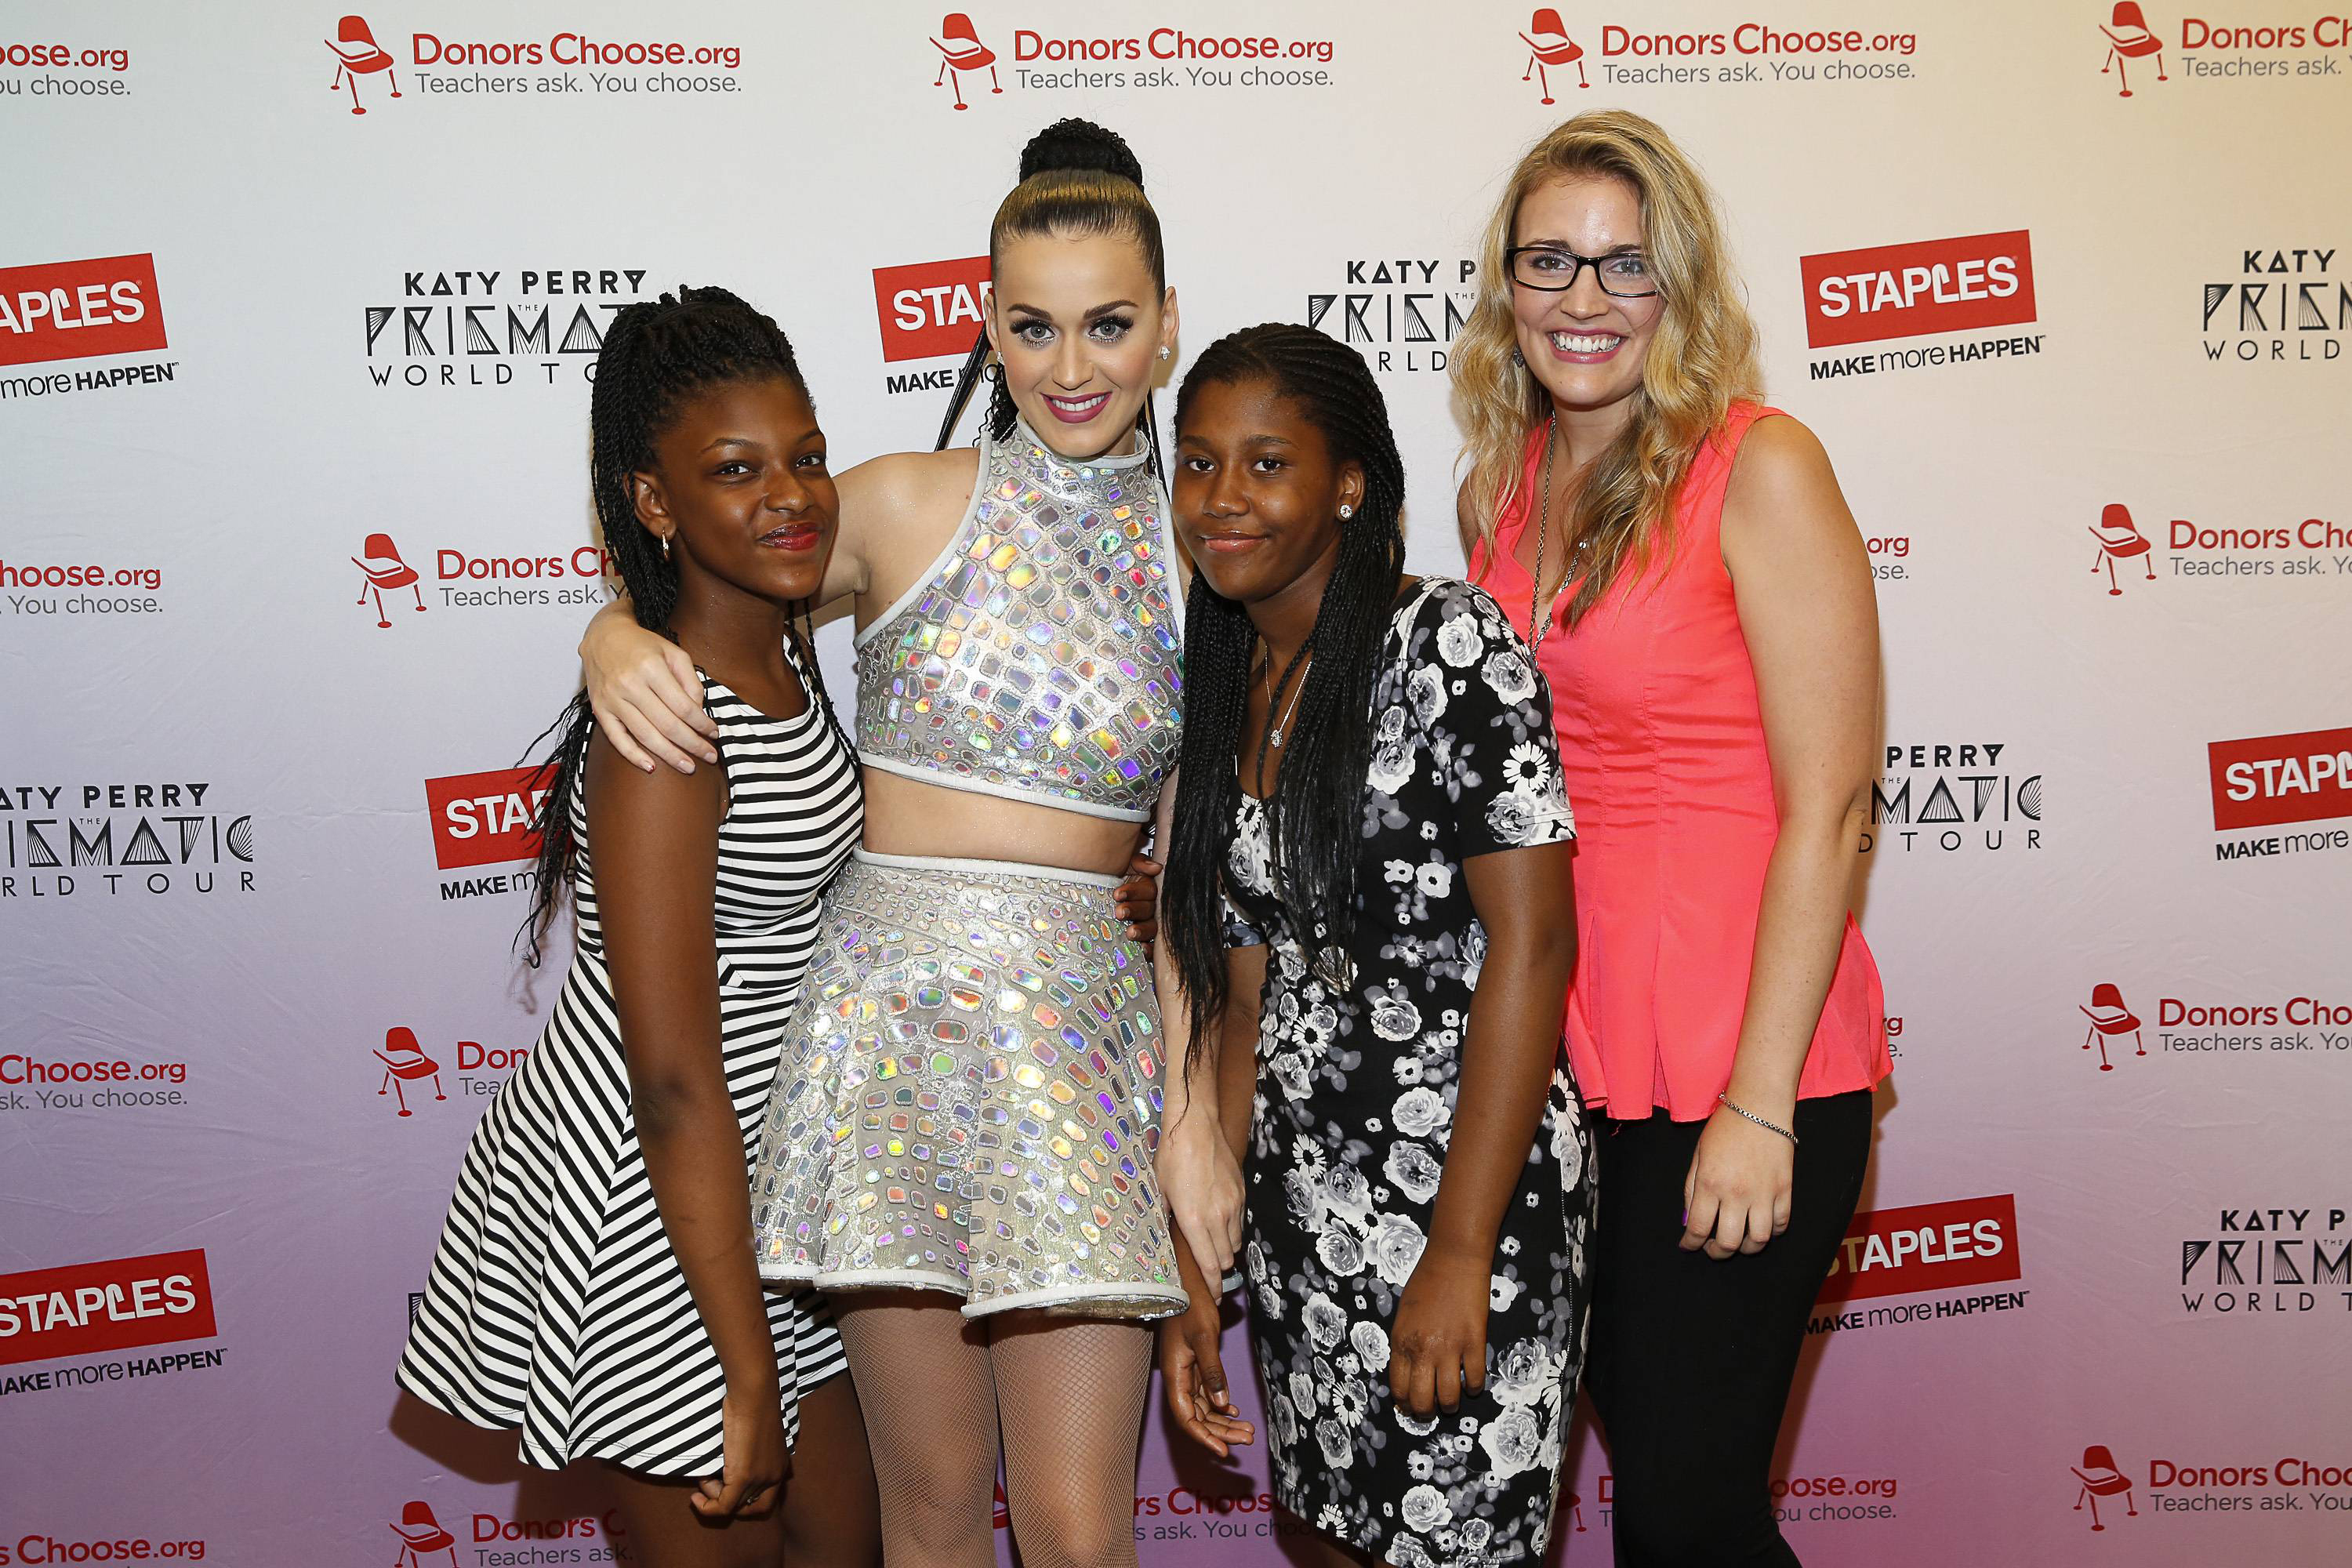 """Global pop star Katy Perry, center, meets with local students, left to right, Jahnay Bryan, Dorothy Toure, and local teacher Jennifer Nelson backstage at Madison Square Garden during her Prismatic World Tour performance on Wed., July 9 in New York, N.Y. Staples teamed up with superstar Katy Perry to """"Make Roar Happen"""" and celebrate and support teachers during the back-to-school season by donating $1 million to DonorsChoose.org, a charity that has helped fund more than 450,000 classroom projects for teachers and impacted more than 11 million students. (Photo by Mark Von Holden/Invision for Staples/AP Images)"""